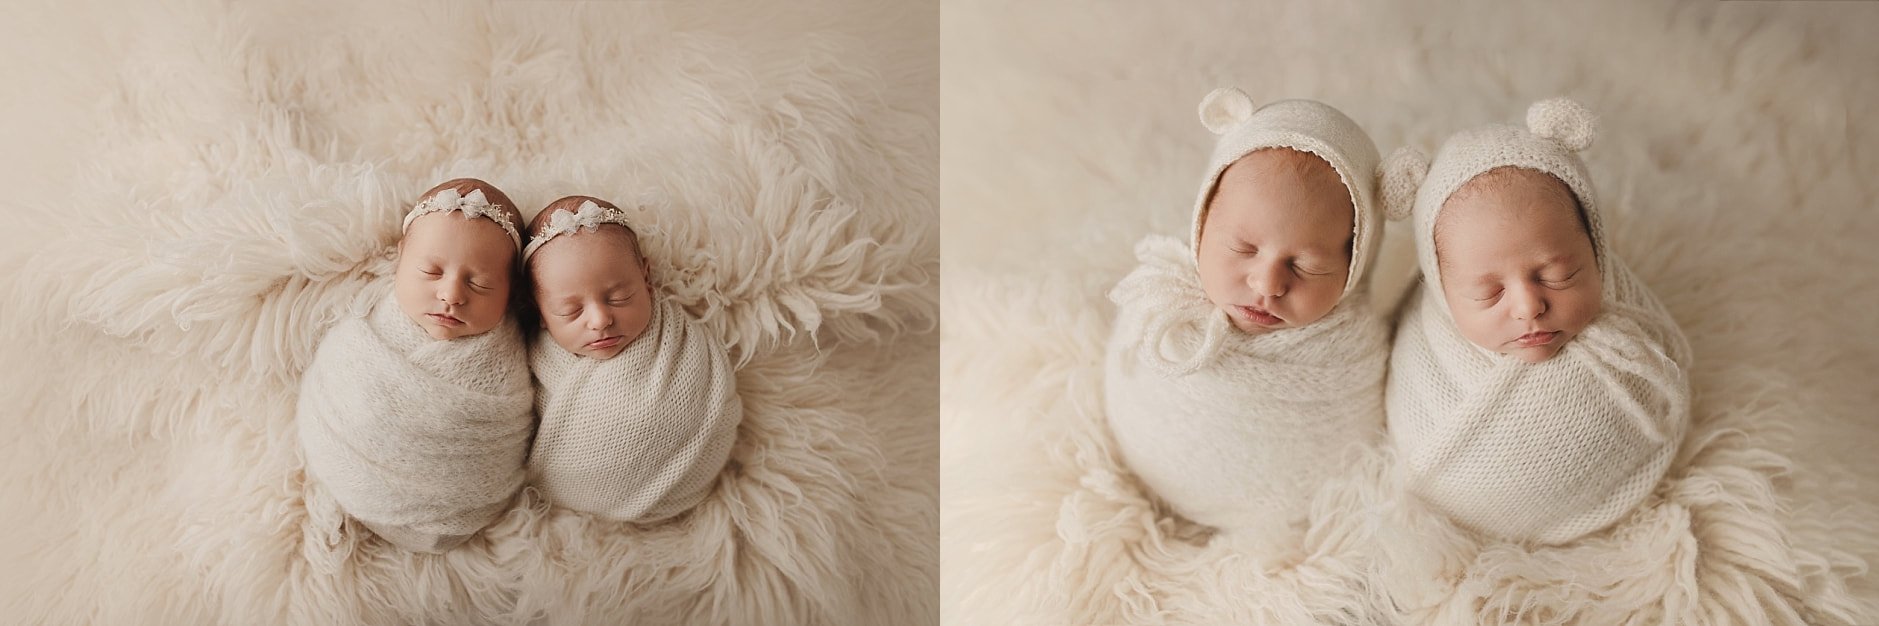 newborn twin photography portland oregon